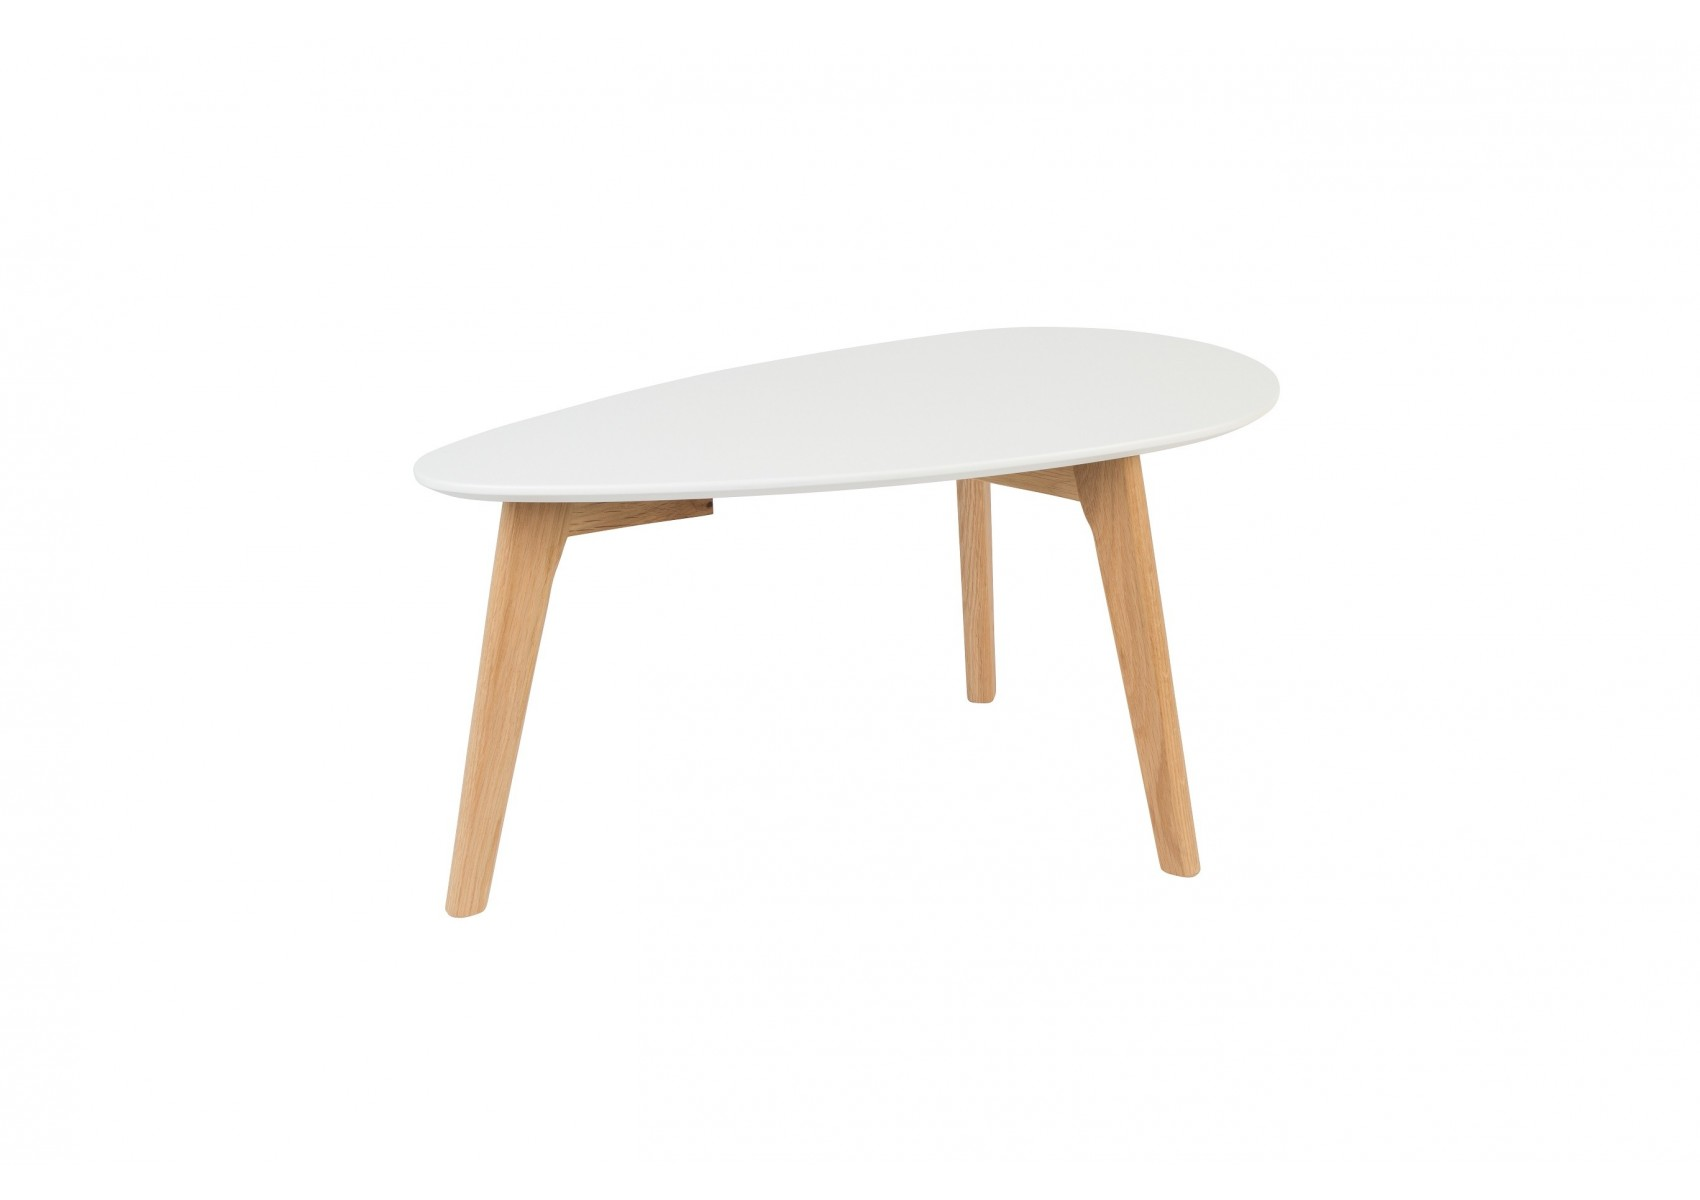 Tables basse scandinave drop laqu e blanche for Table basse scandinave laquee